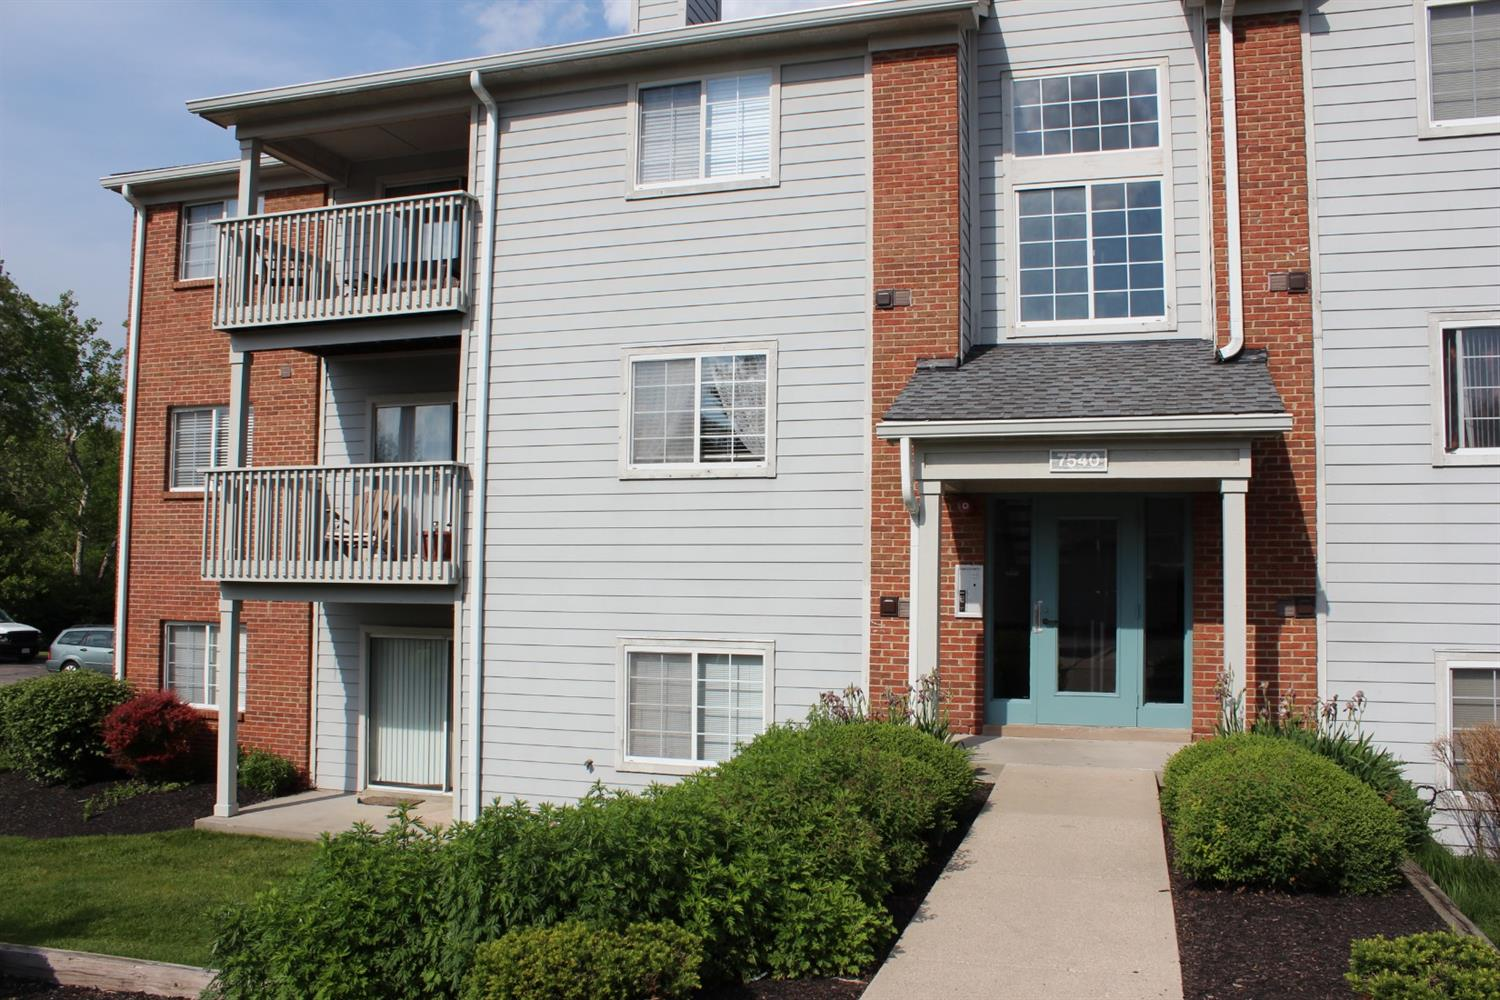 Property for sale at 7540 Shawnee Lane Unit: 137, West Chester,  Ohio 45069